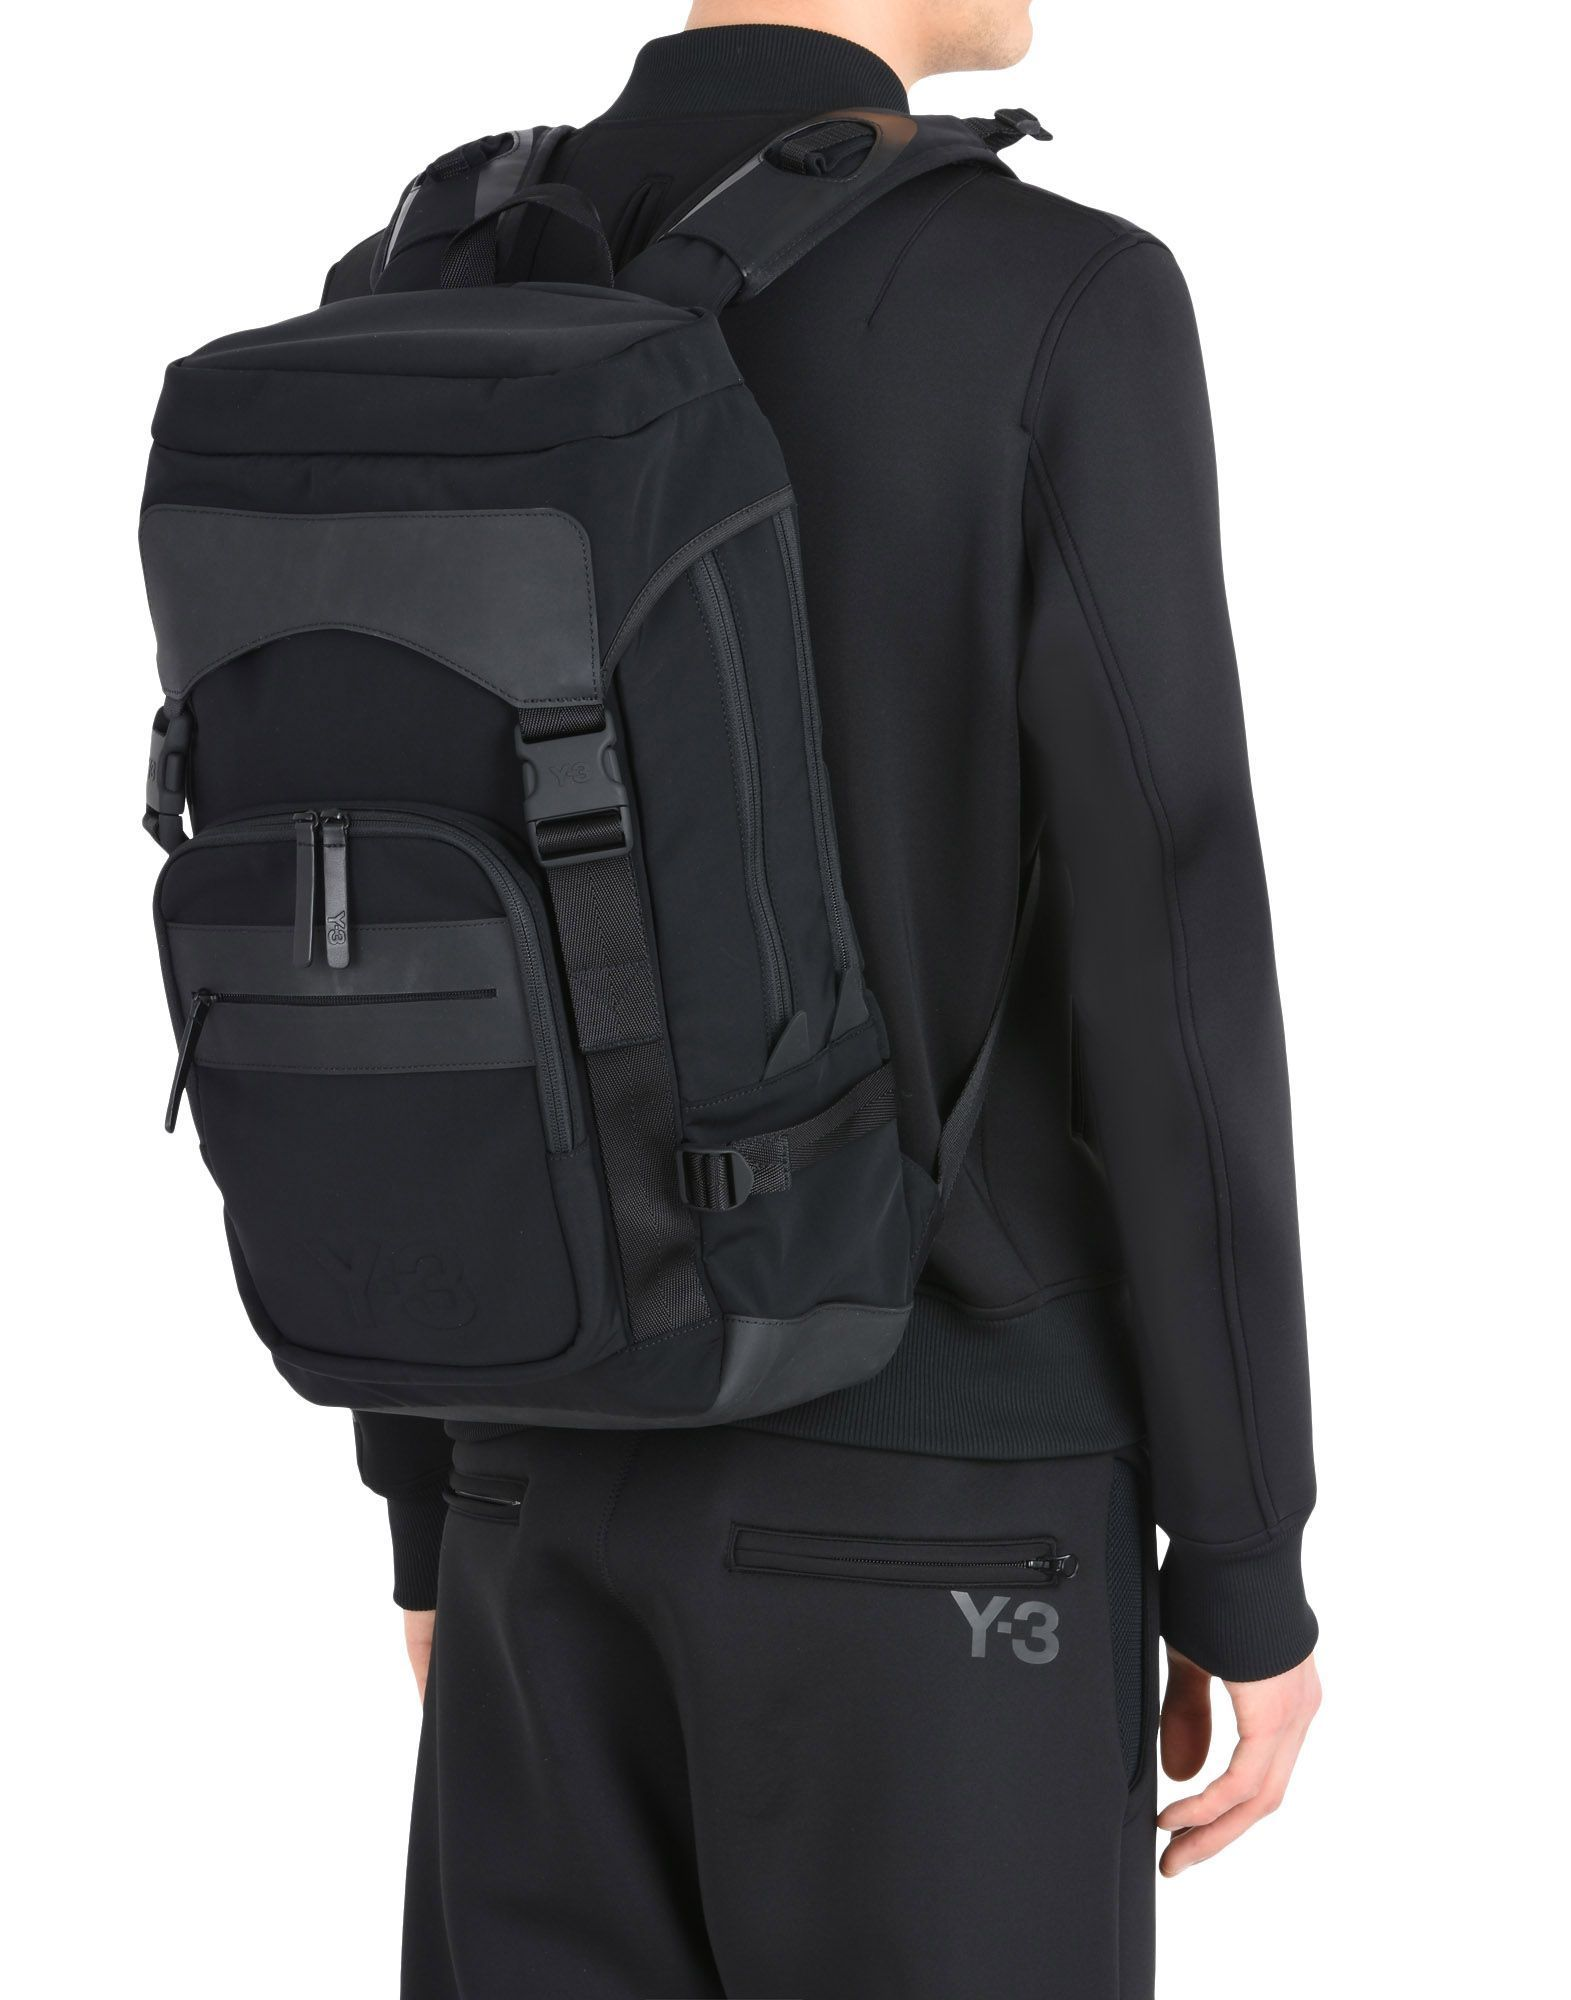 Y-3☆ULTRATECH BAG☆ブラック系